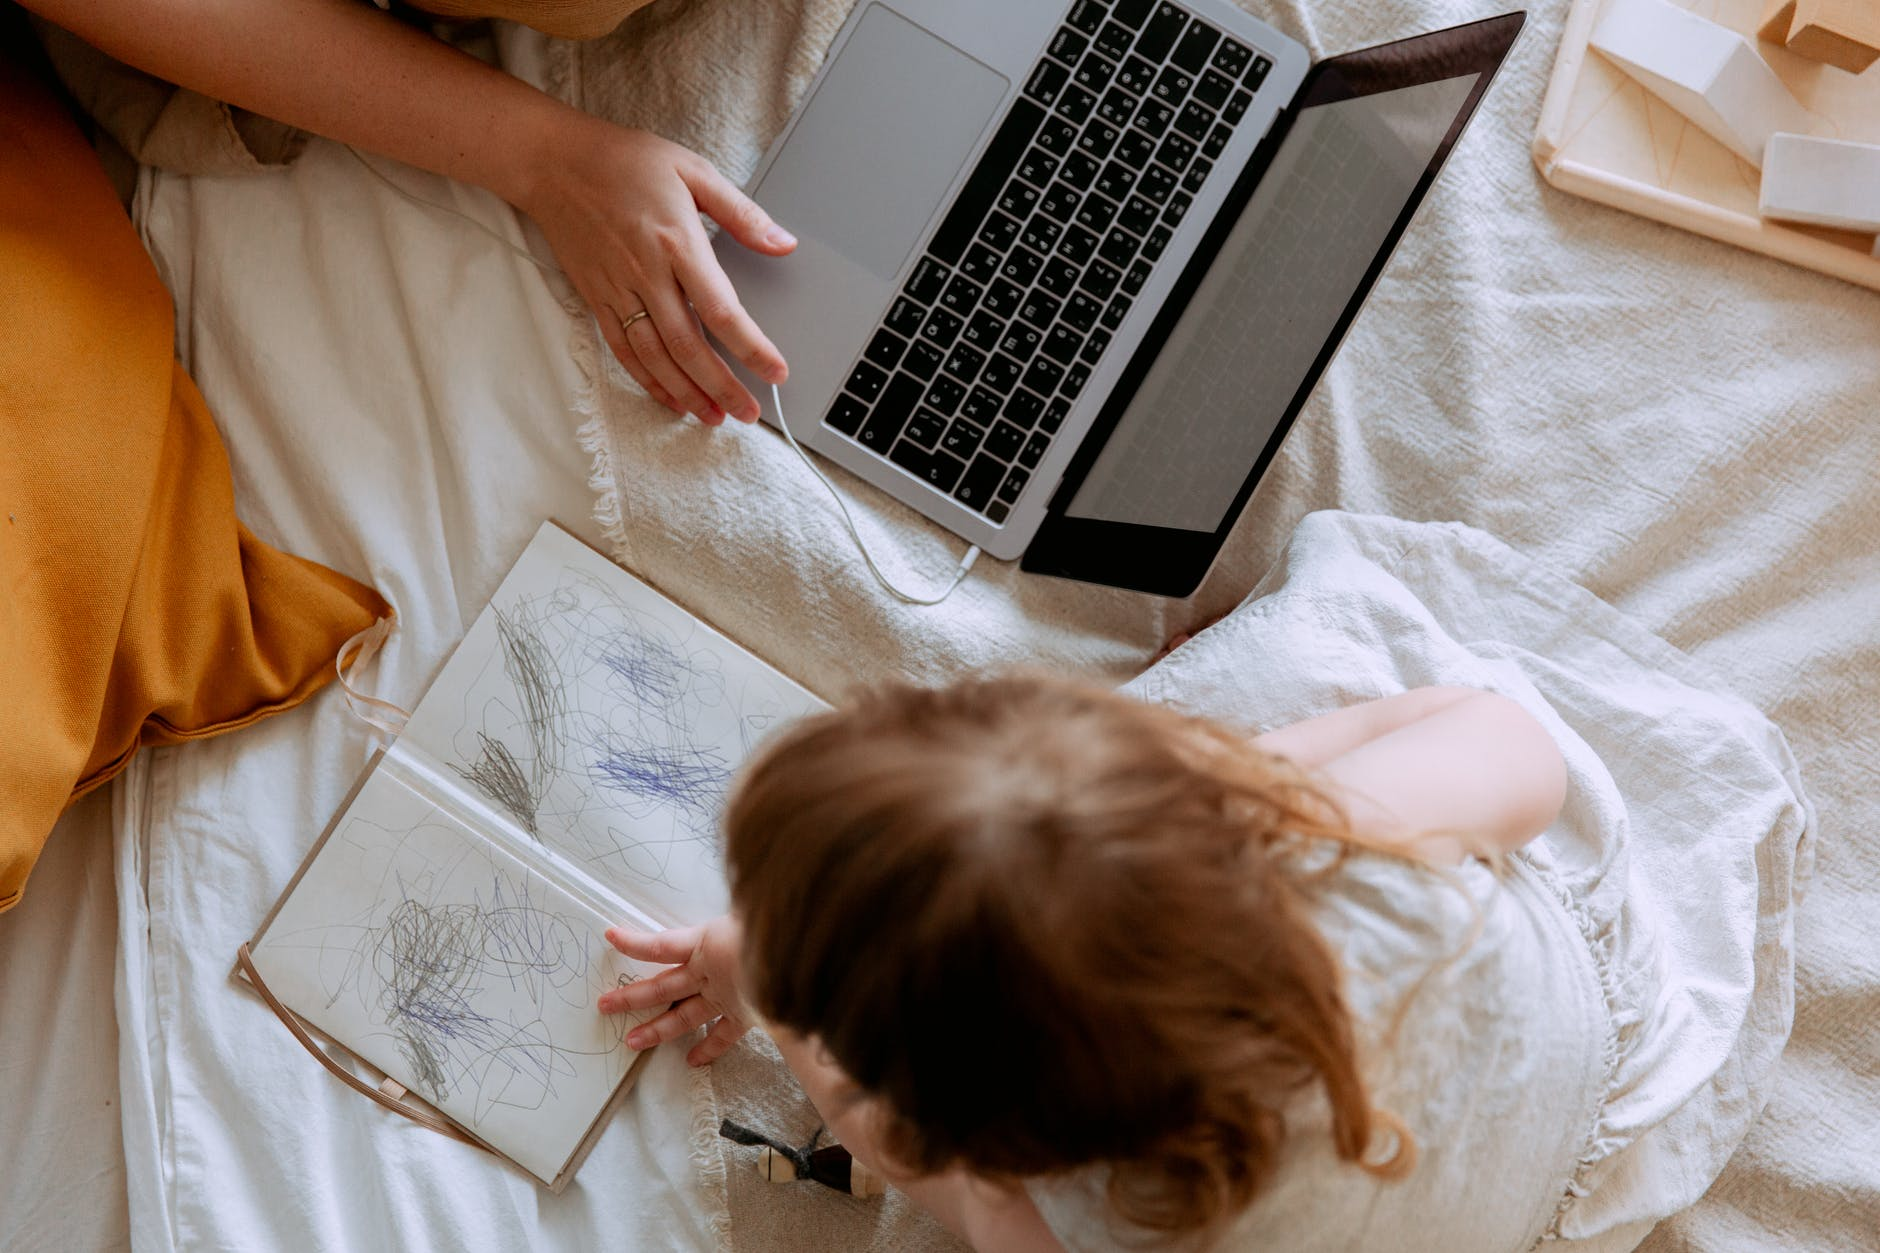 crop mother and daughter using laptop and drawing